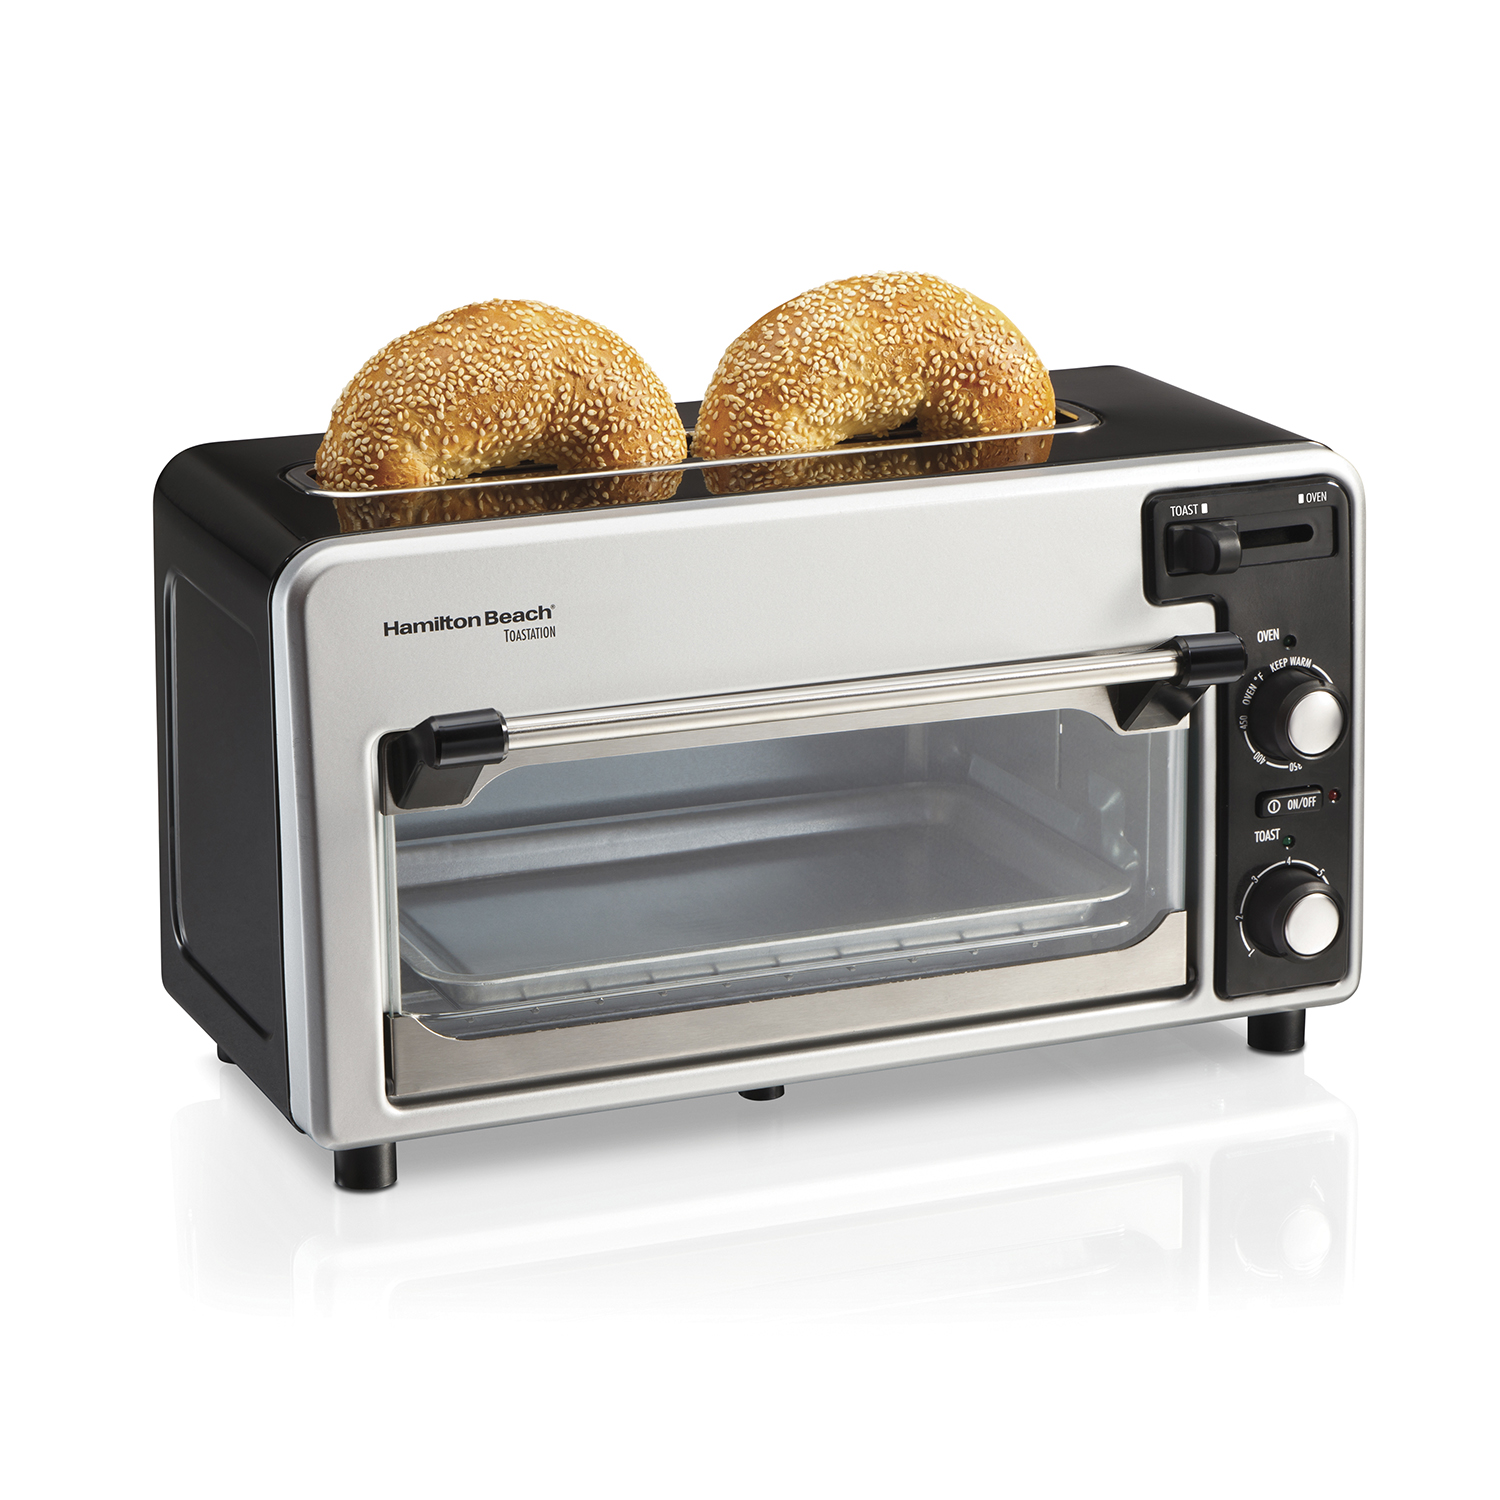 Toastation 2 Slice Toaster and Countertop Toaster Oven (Black) (22723)